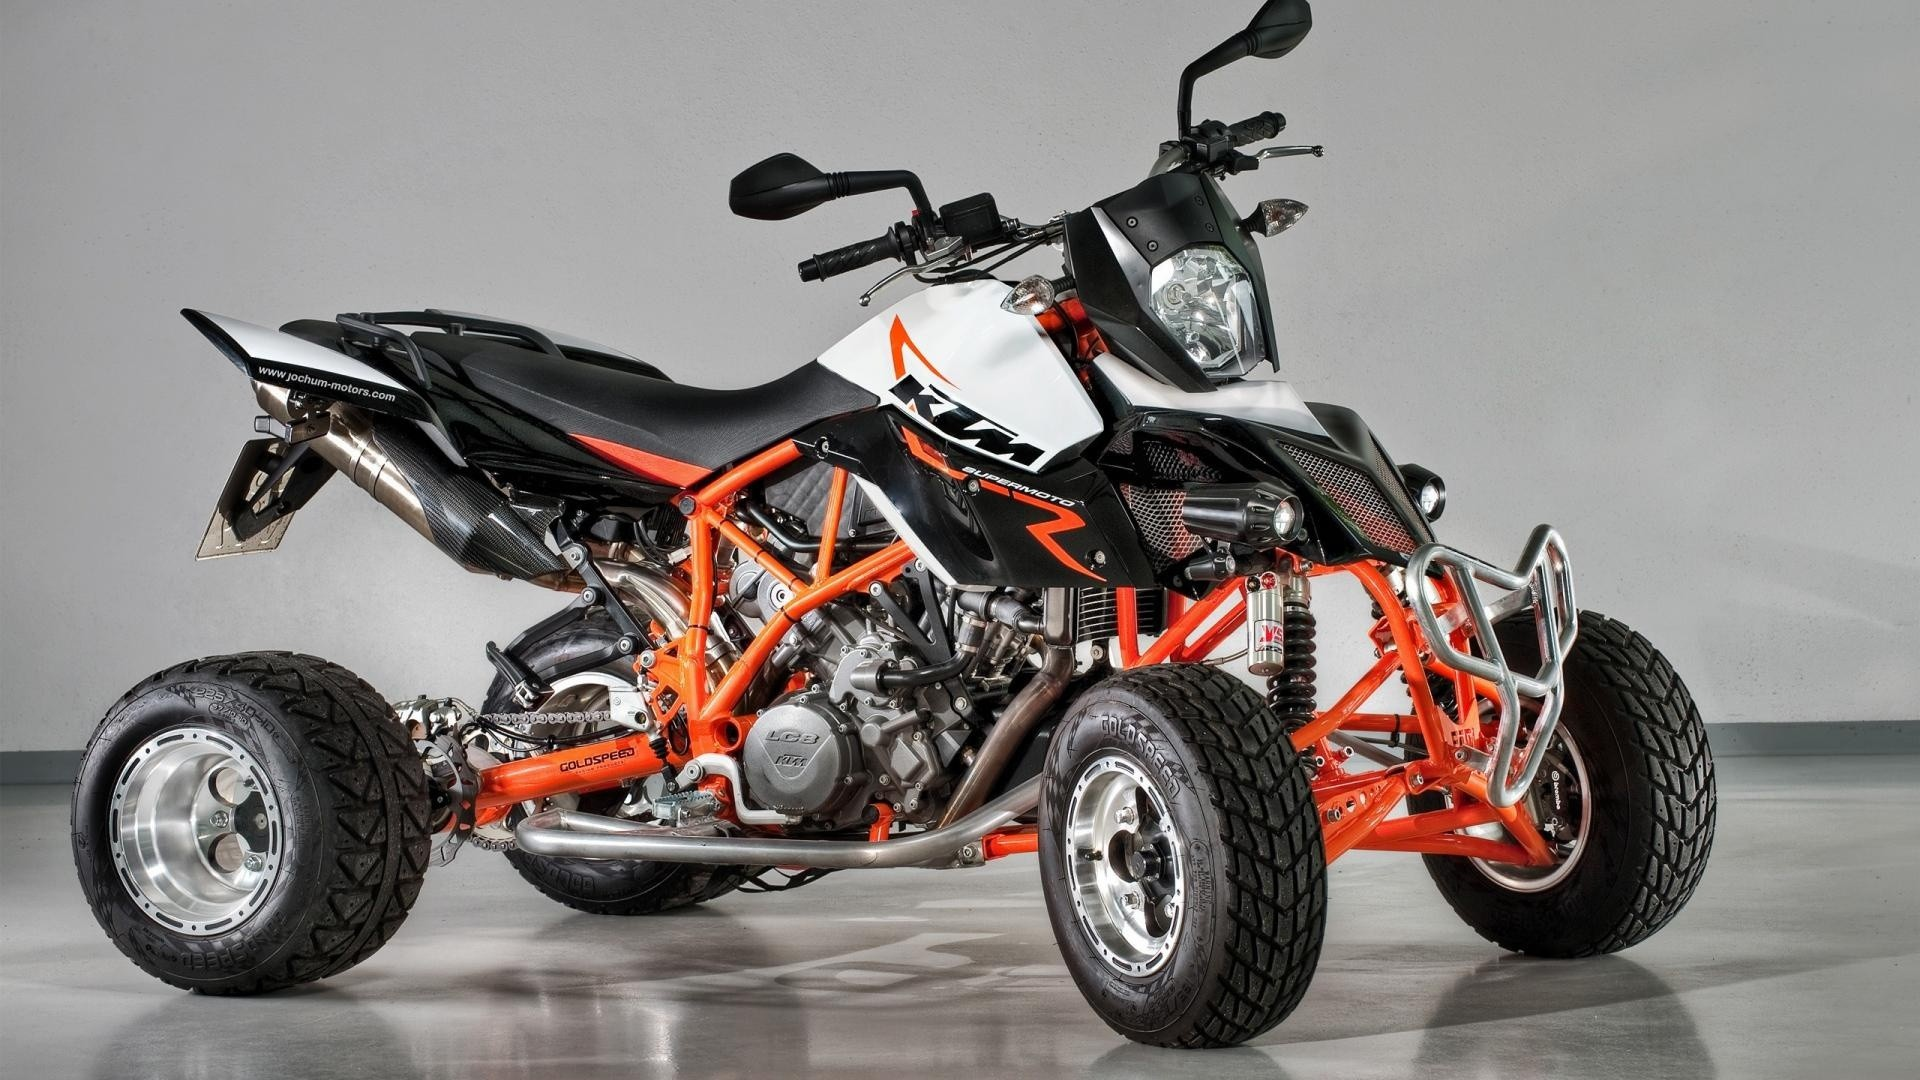 Ktm Duke Bike Quad Motorcycle And Latest Wallpapers HQ Backgrounds 1920x1080